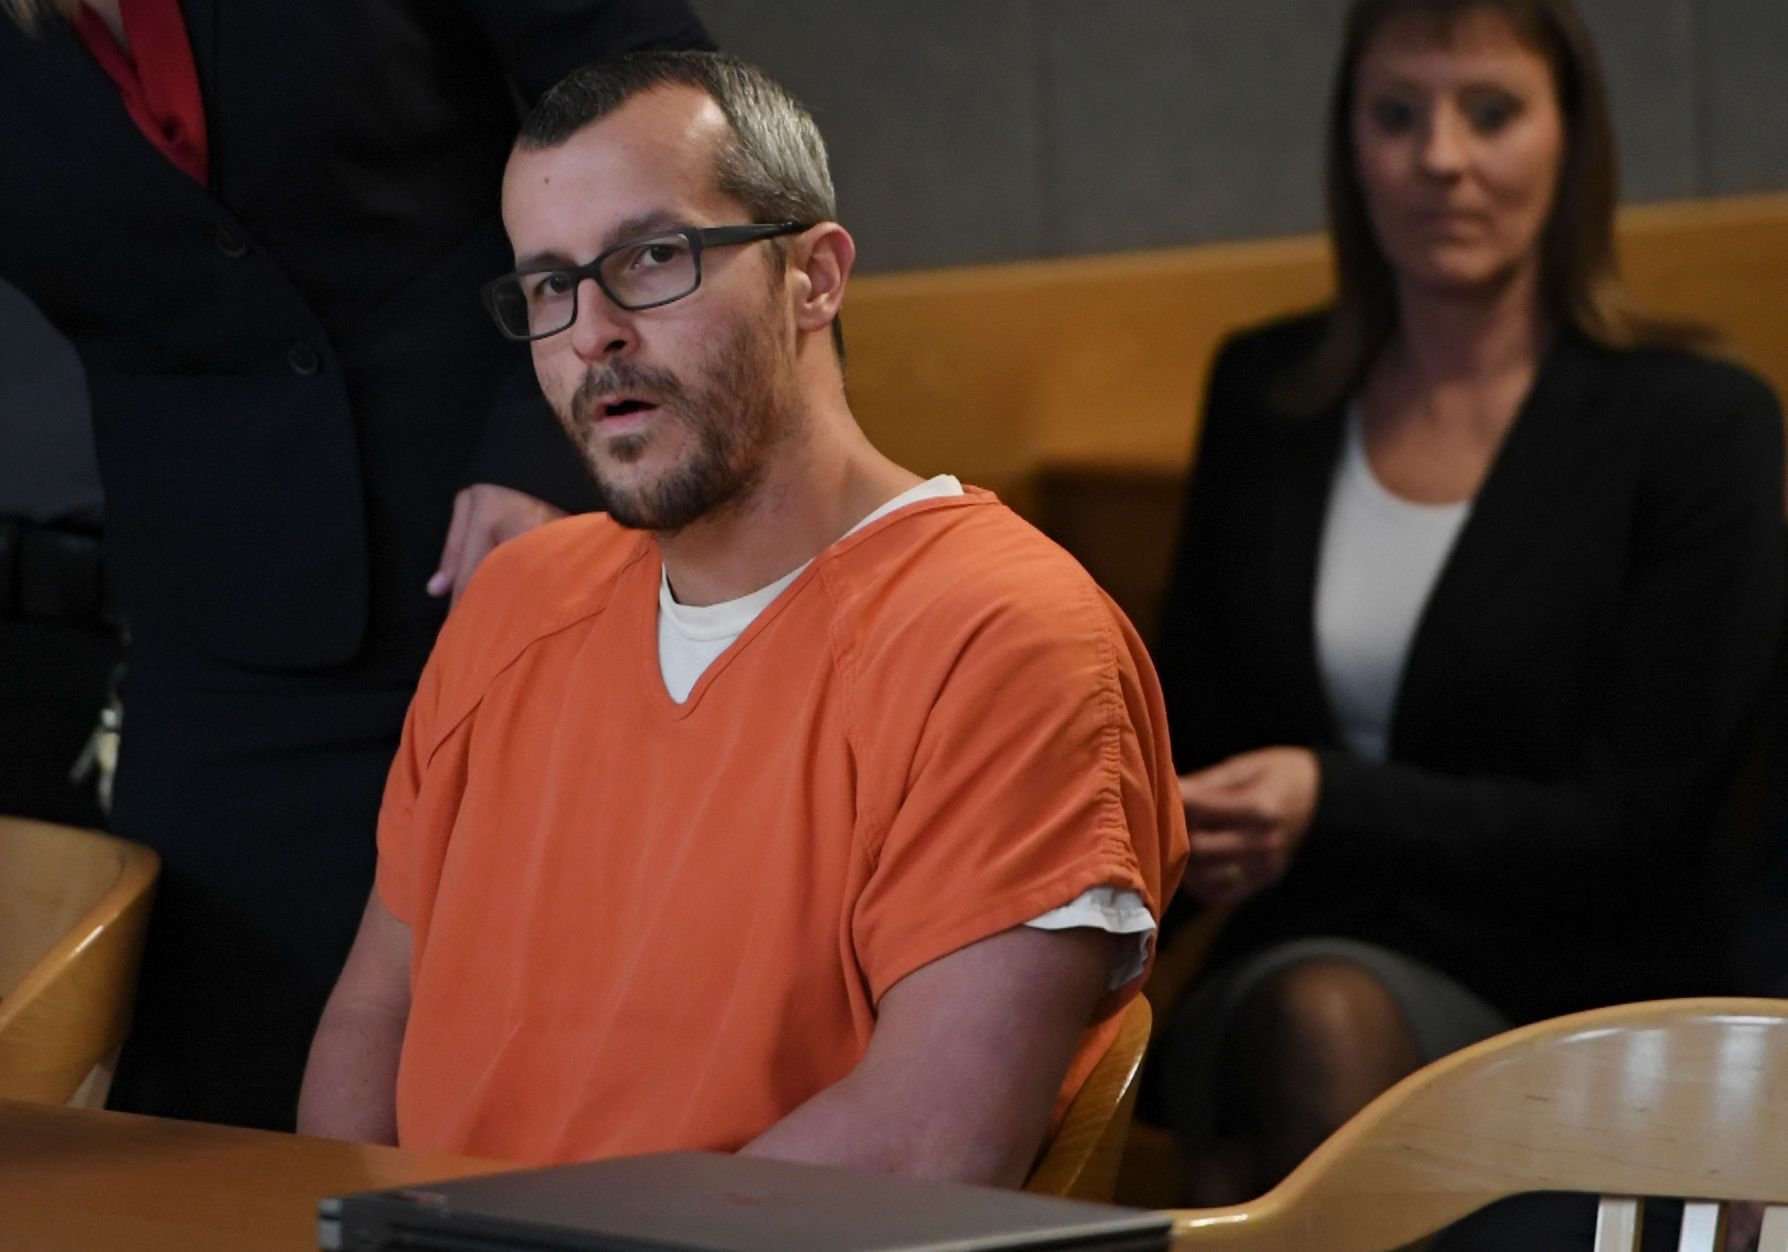 Christopher Watts sat in court for his sentencing hearing at the Weld County Courthouse on November 19, 2018 in Greeley, Colorado | Photo: Getty Images